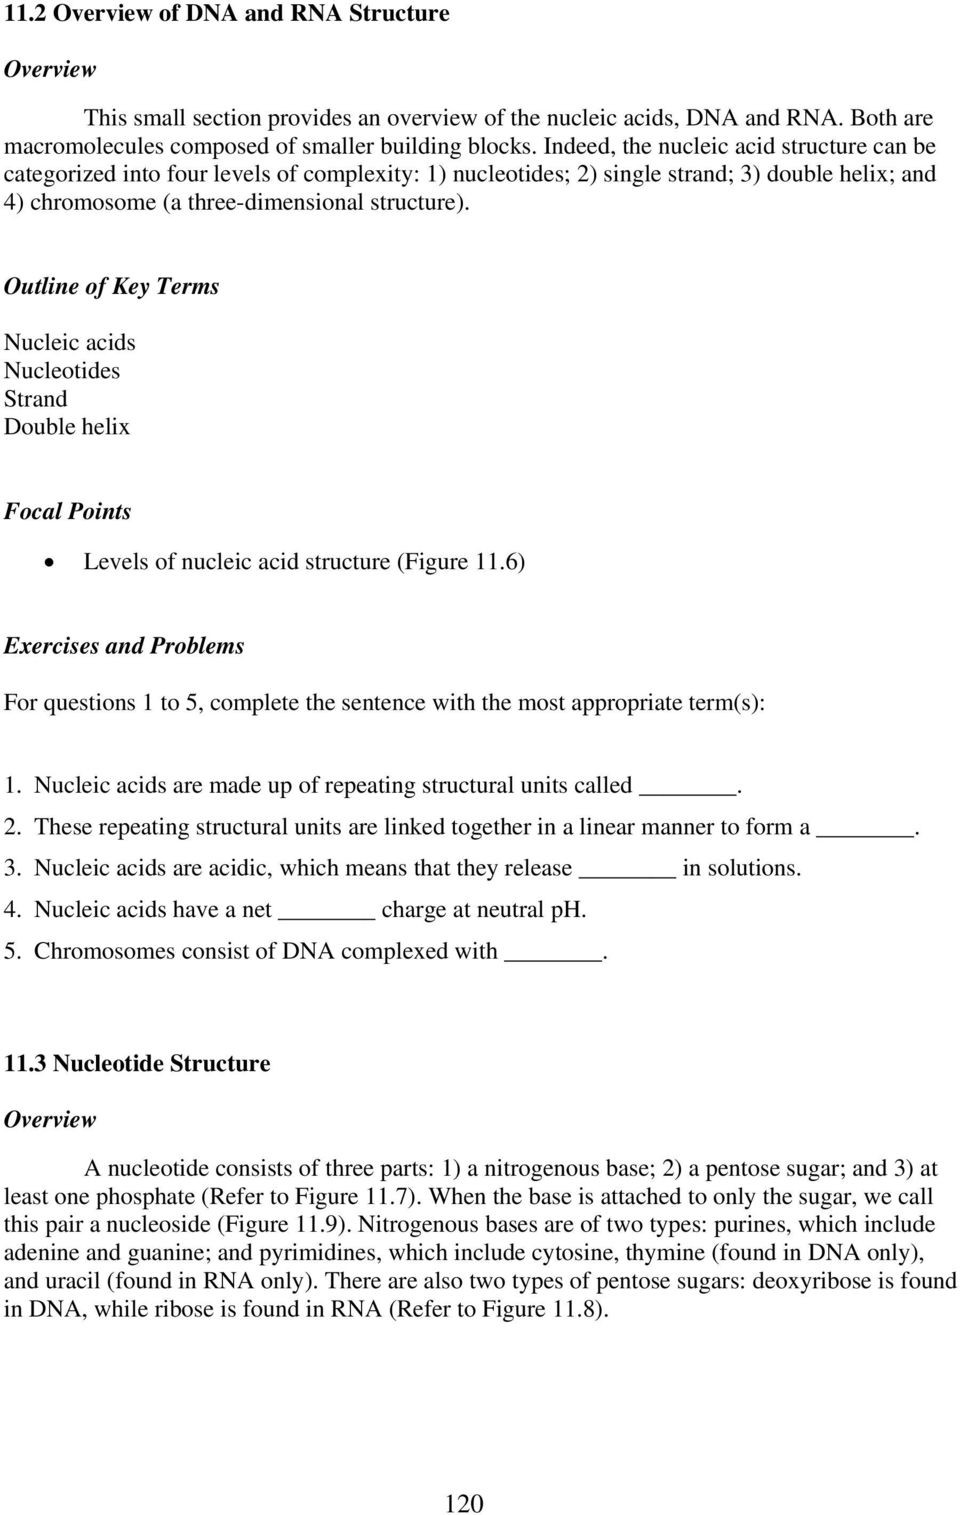 Nucleic Acid Worksheet Answers